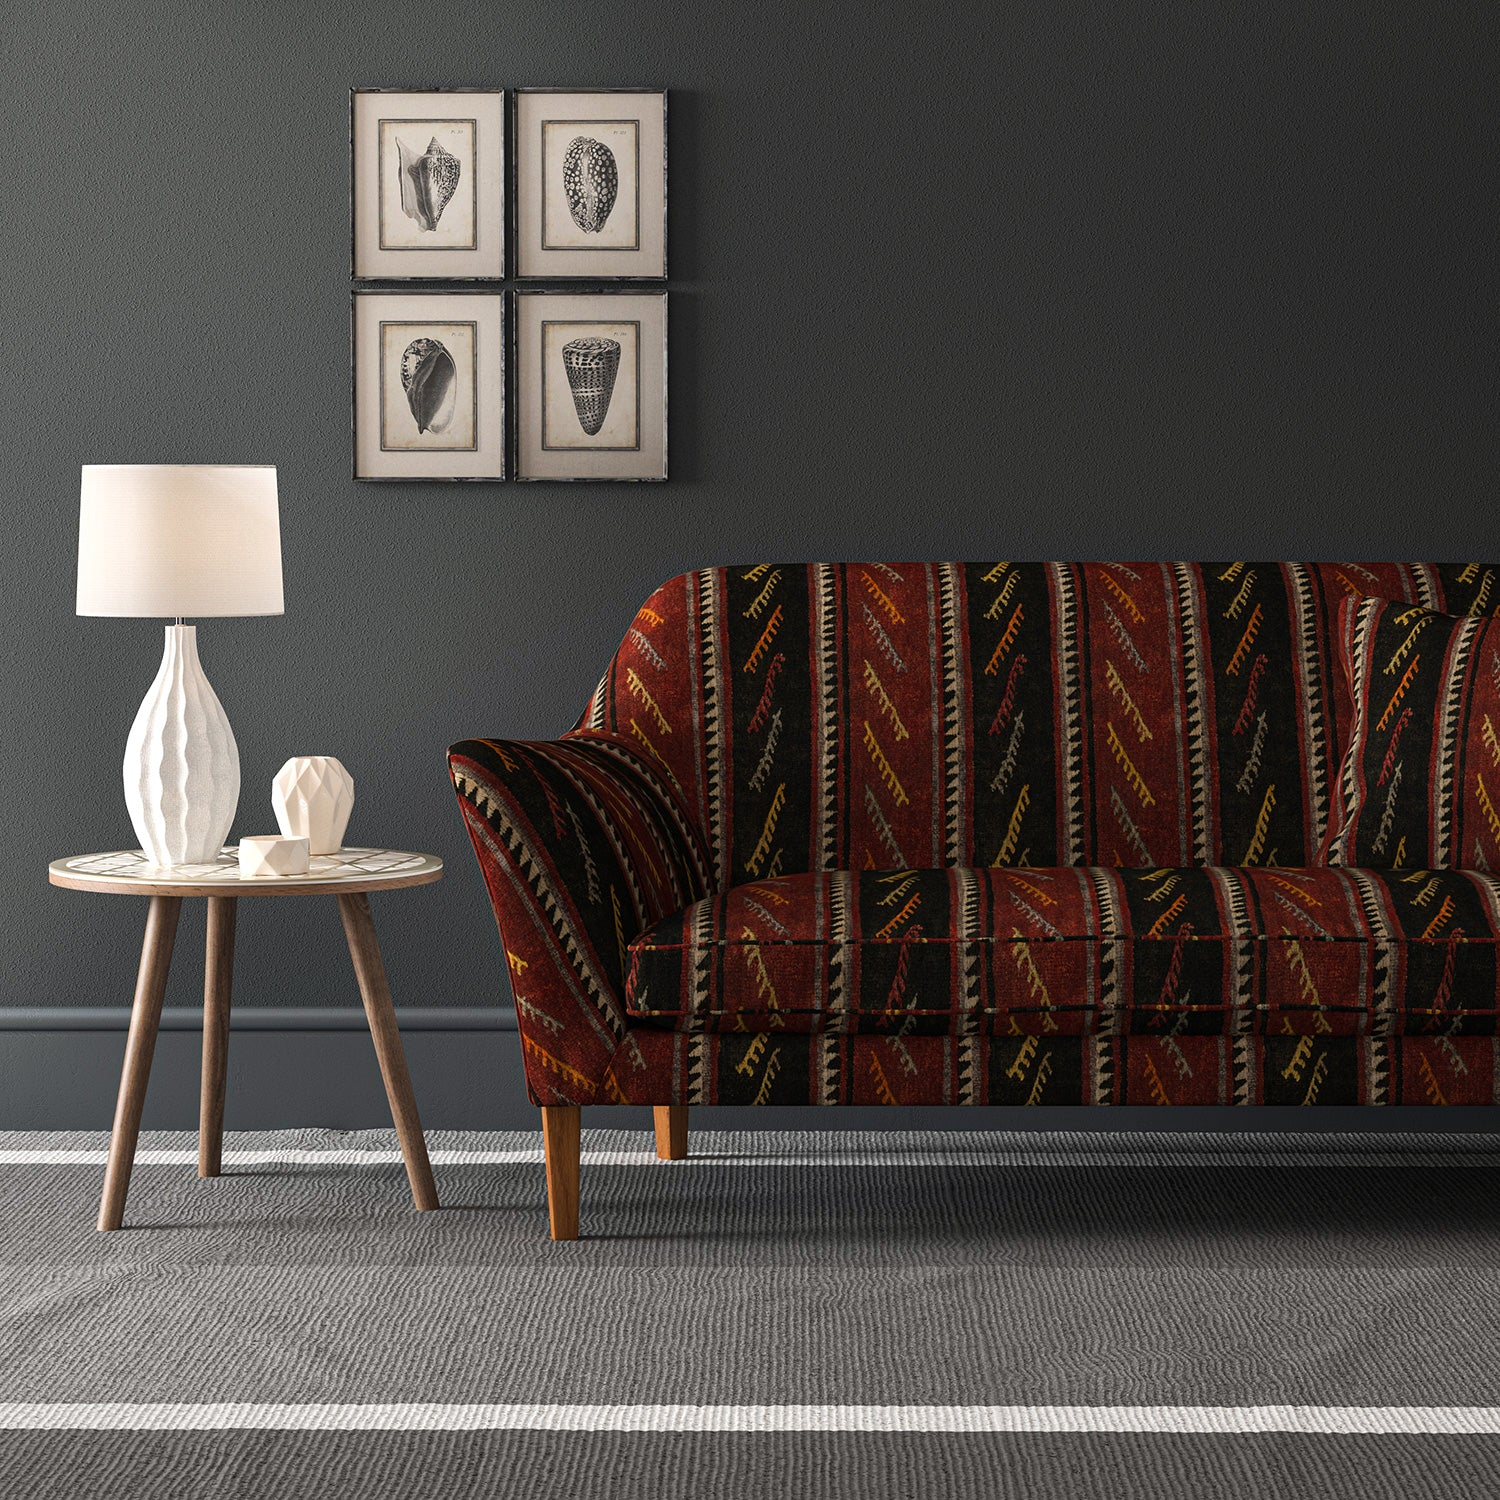 Velvet sofa in a striped velvet fabric in dark red and brown colours with a stain resistant finish